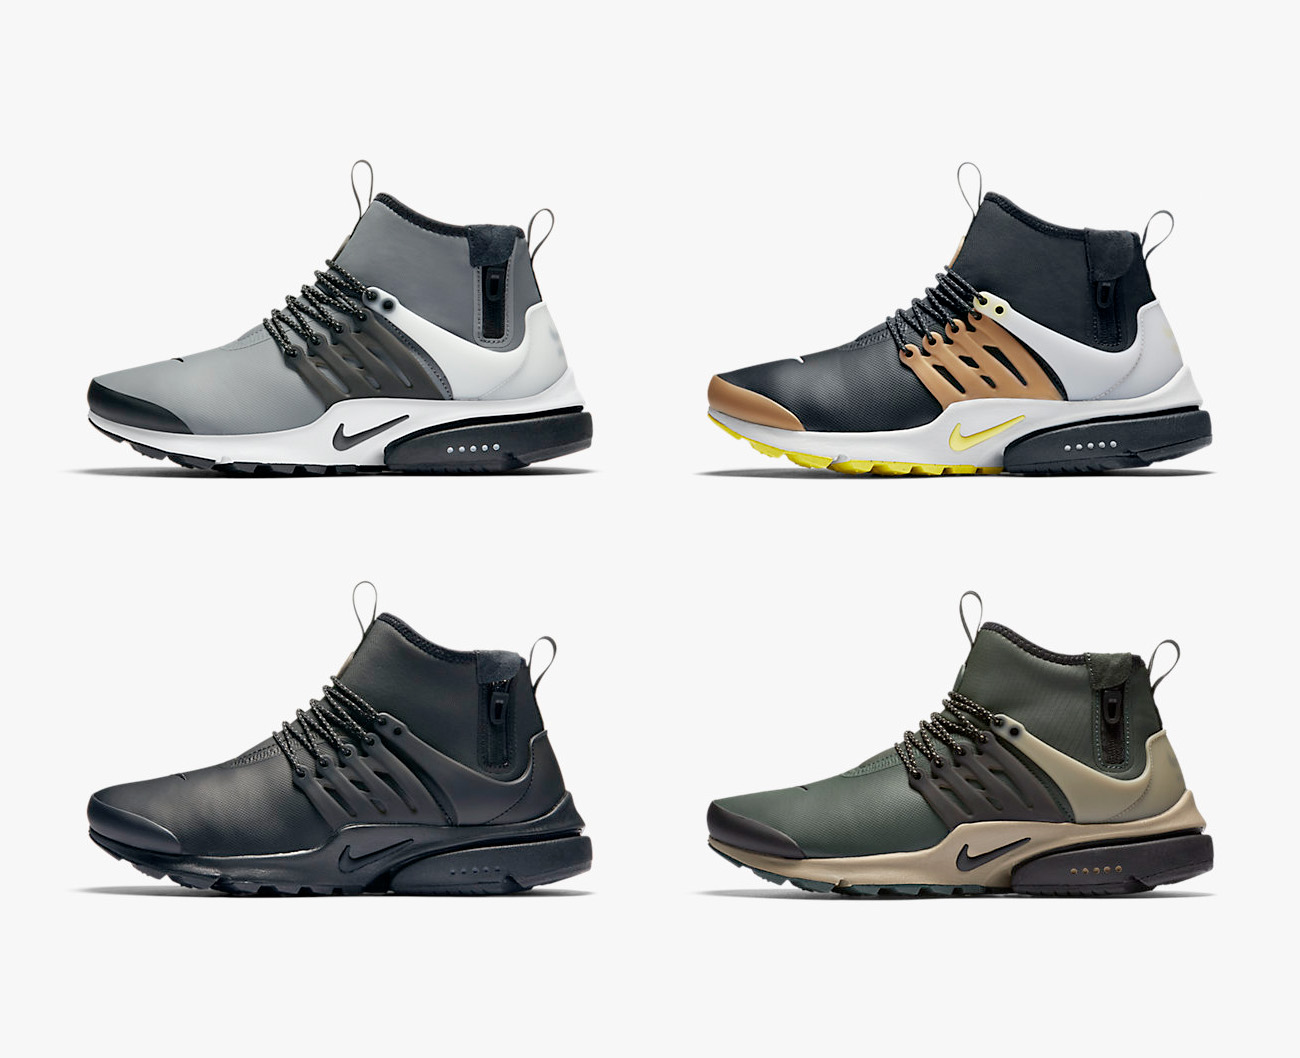 nike air presto mid utility sneakerb0b releases. Black Bedroom Furniture Sets. Home Design Ideas